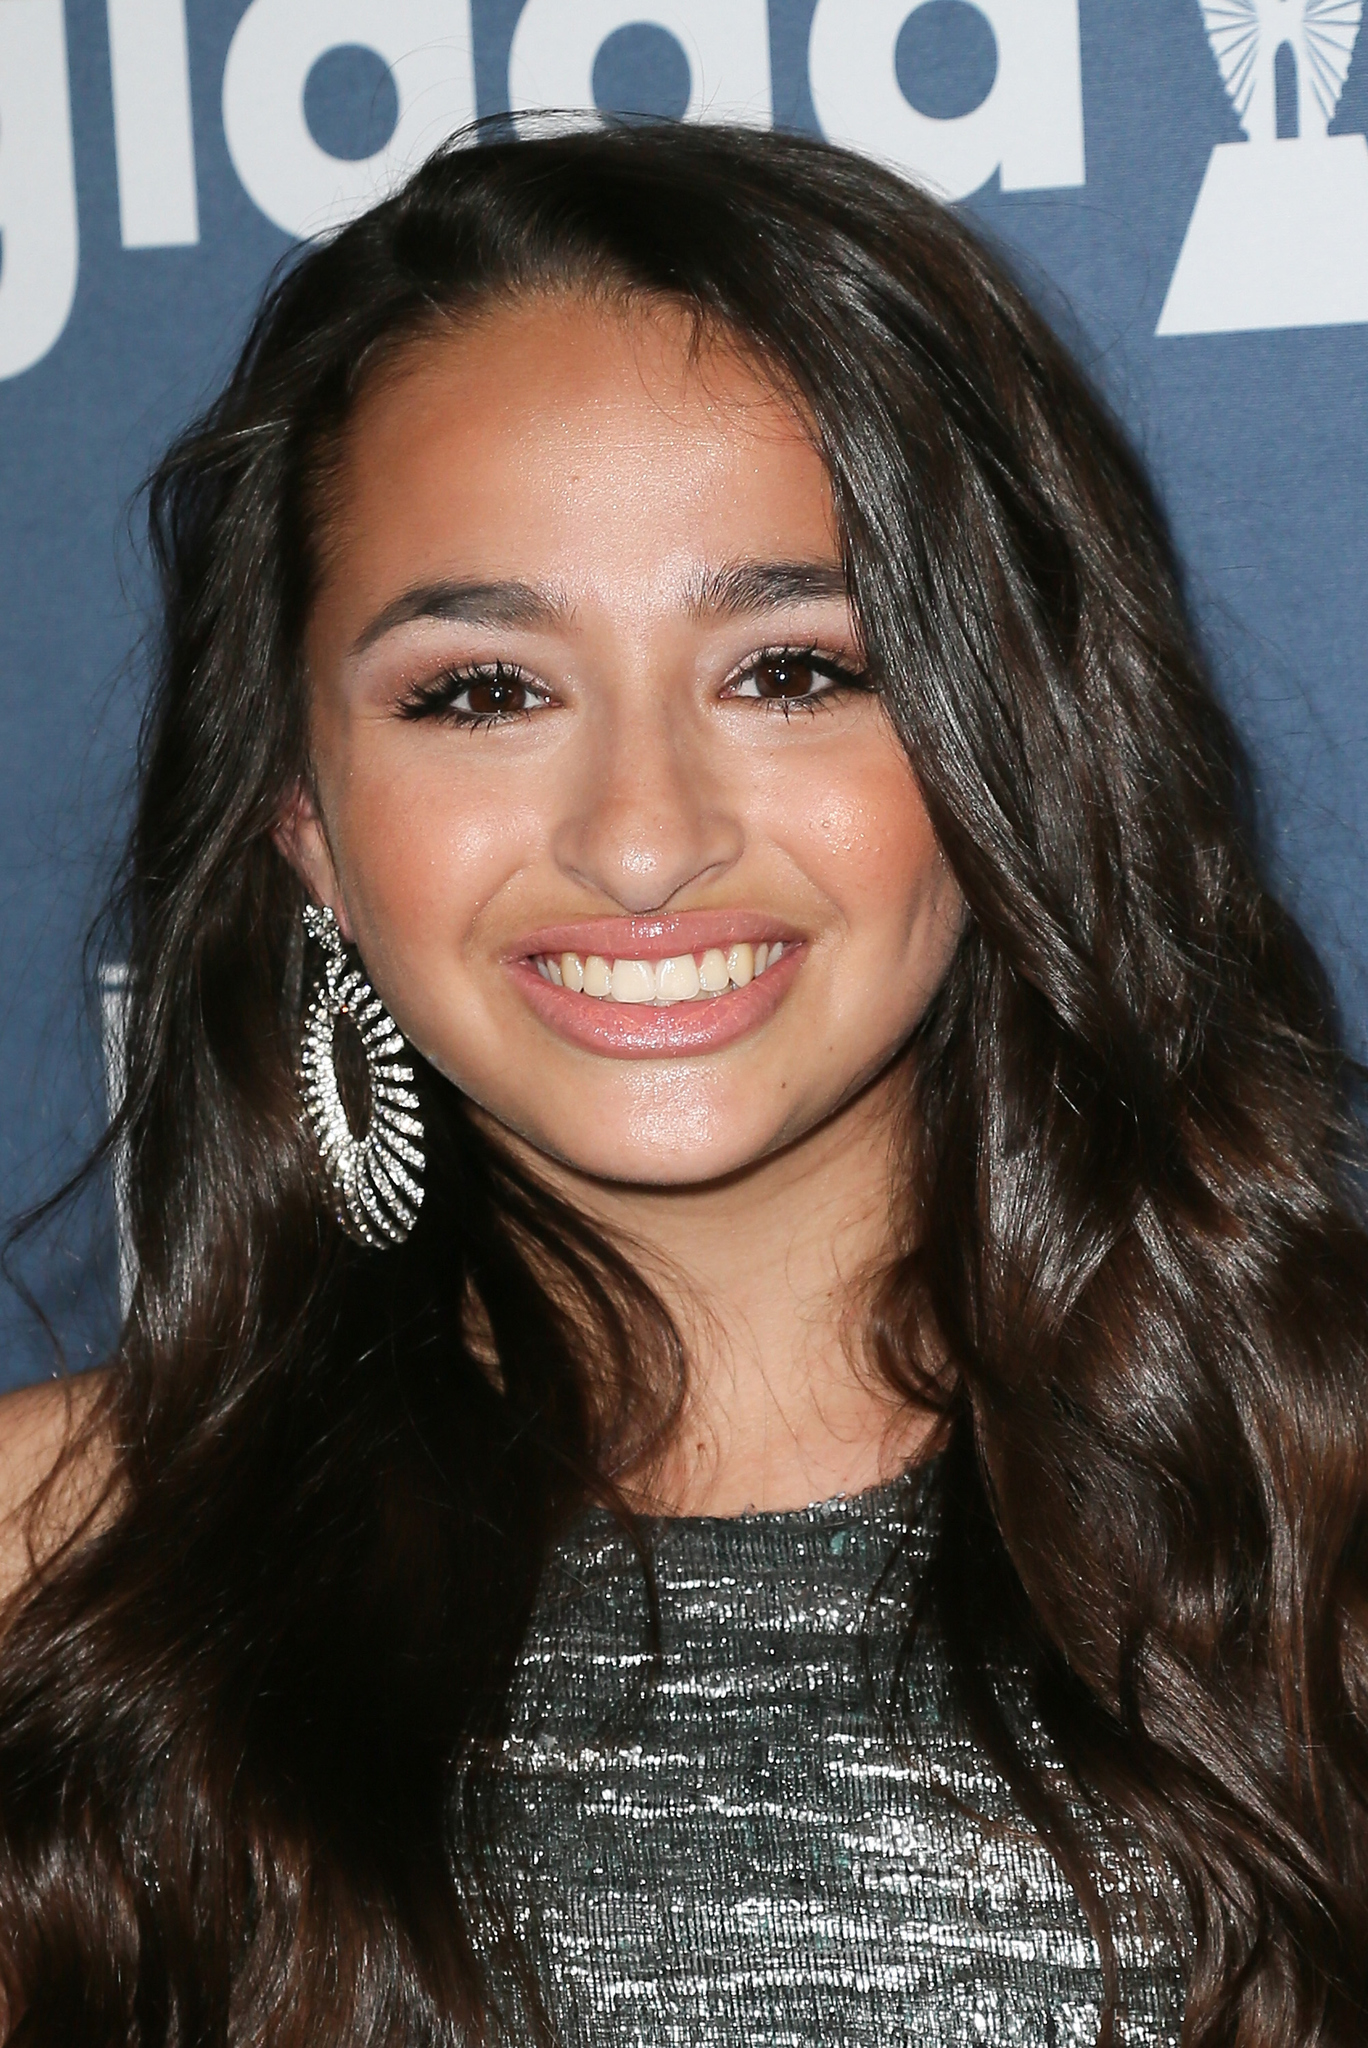 jazz jennings dating 2017 who is brady dating on days of our lives